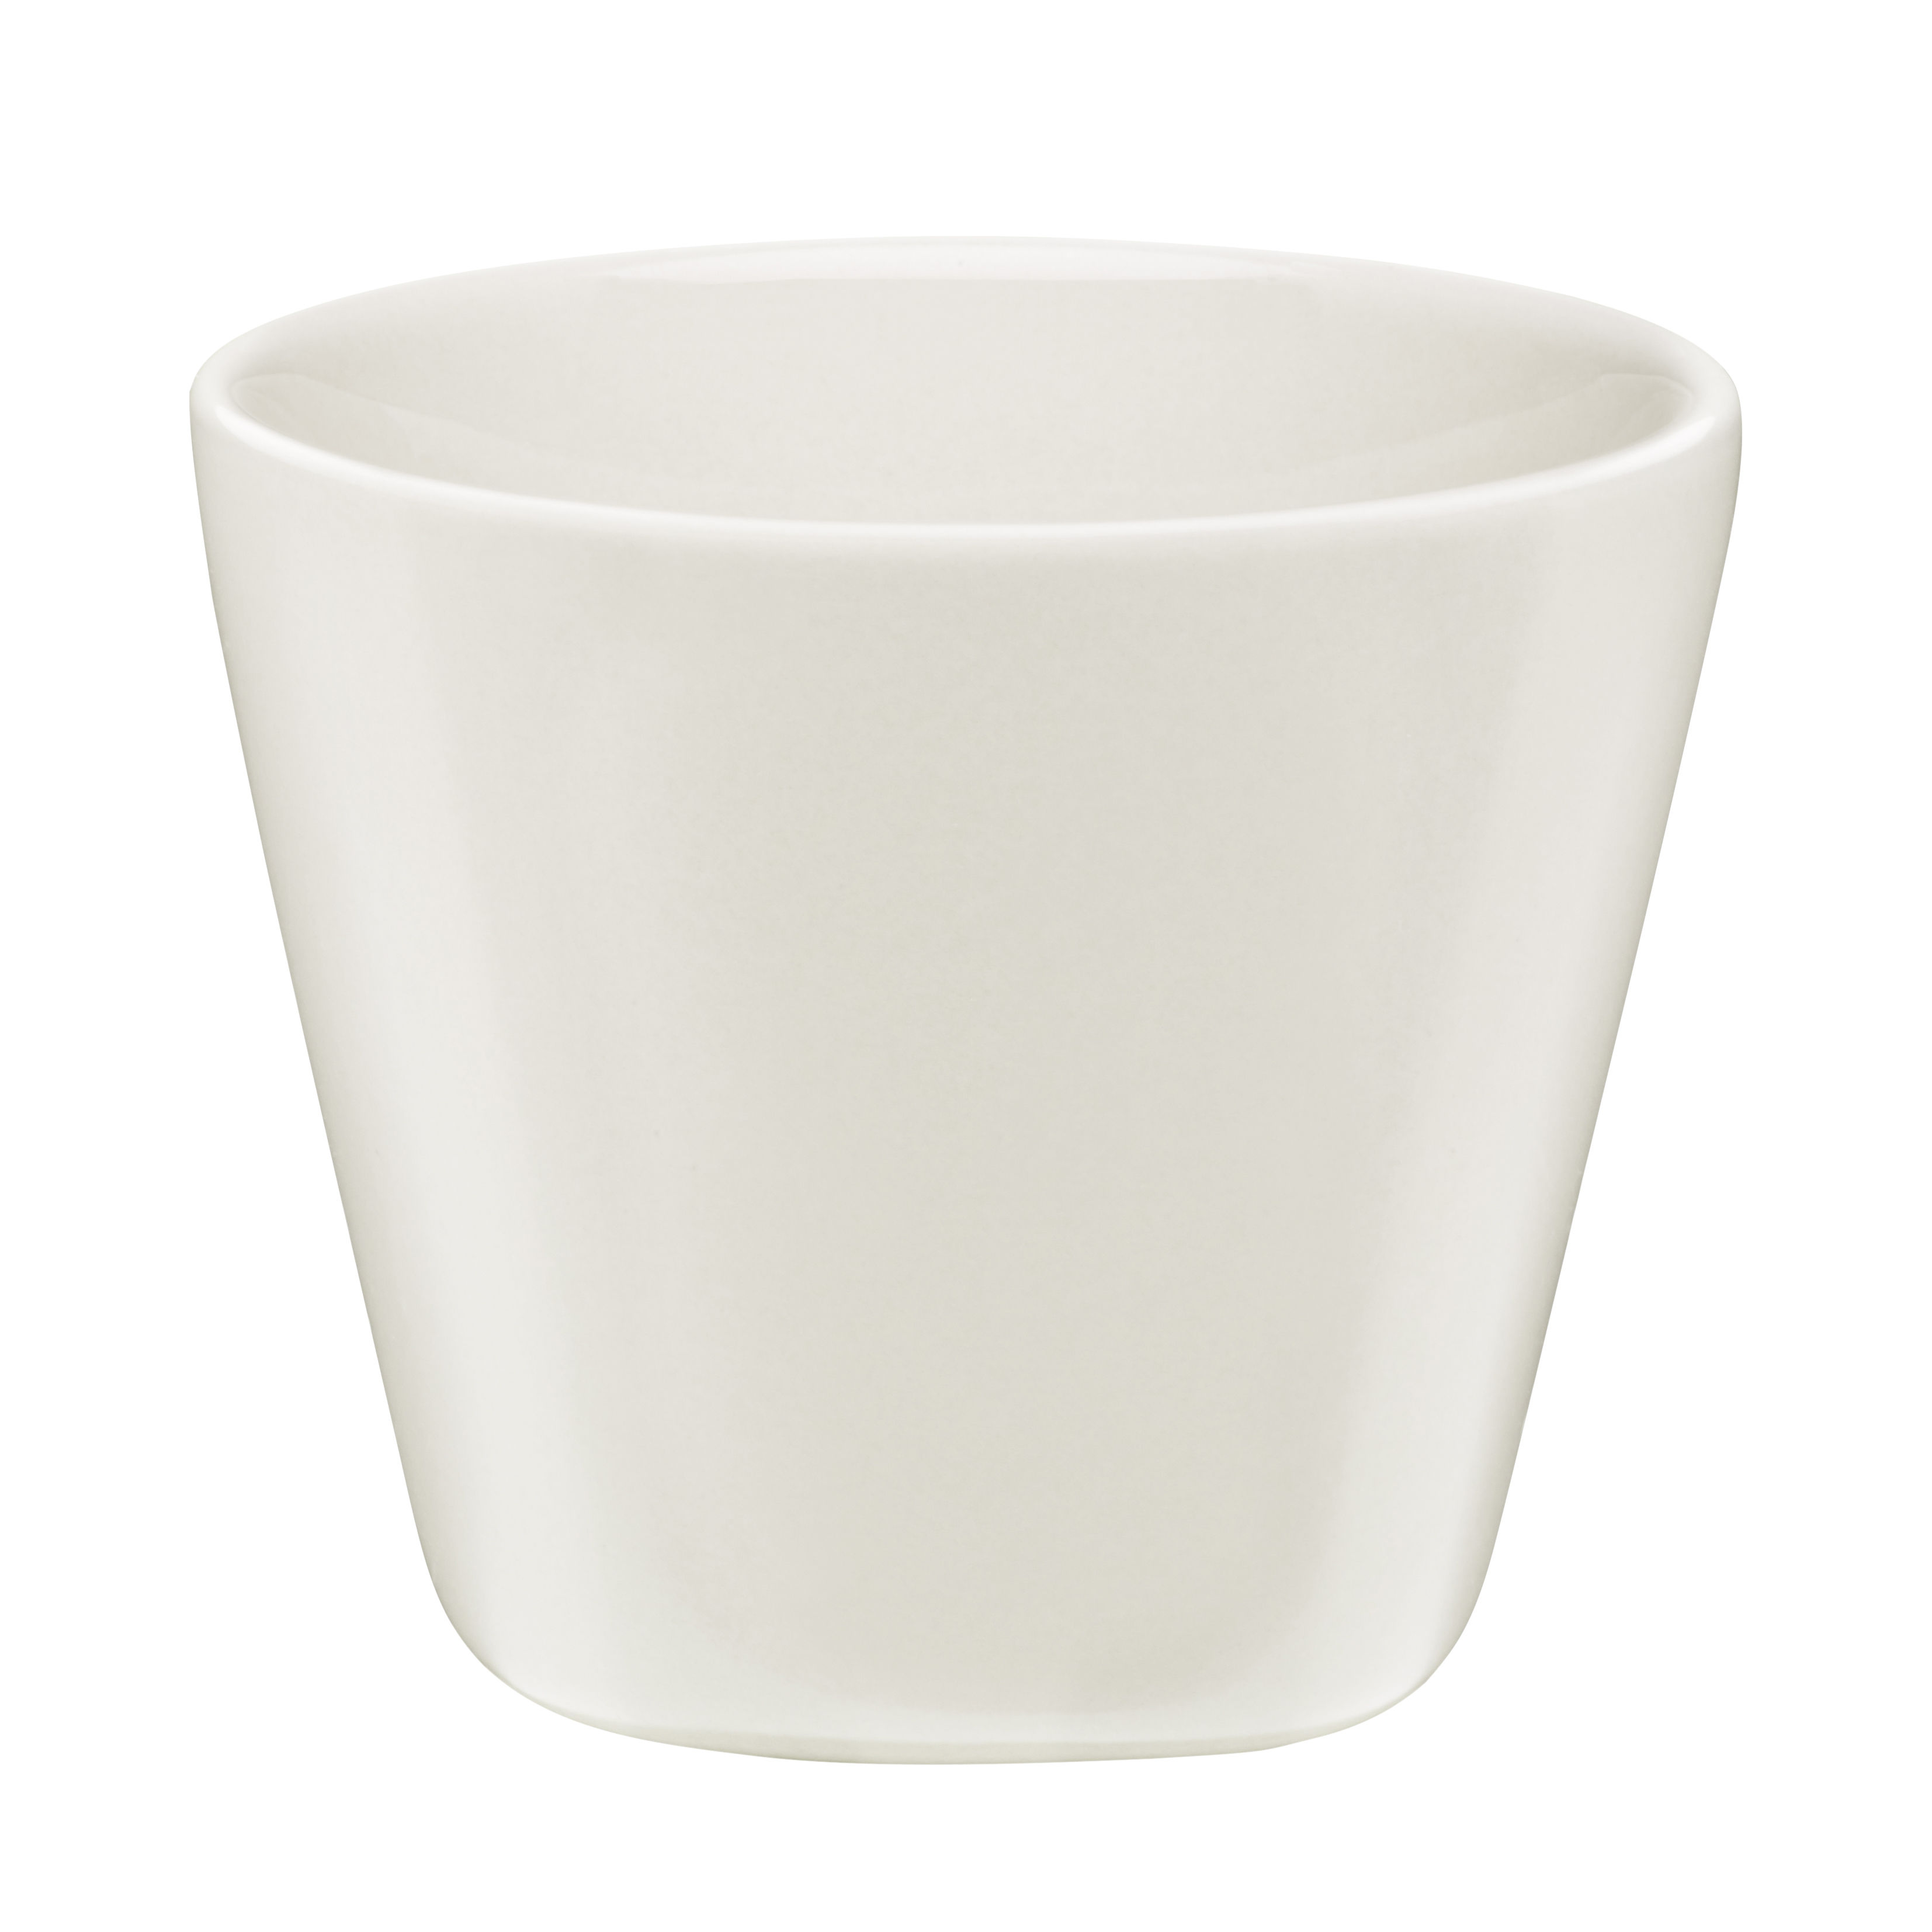 Tableware - Tea & Coffee Accessories - Iittala X Issey Miyake Espresso cup - H 7,5 cm by Iittala - White - China